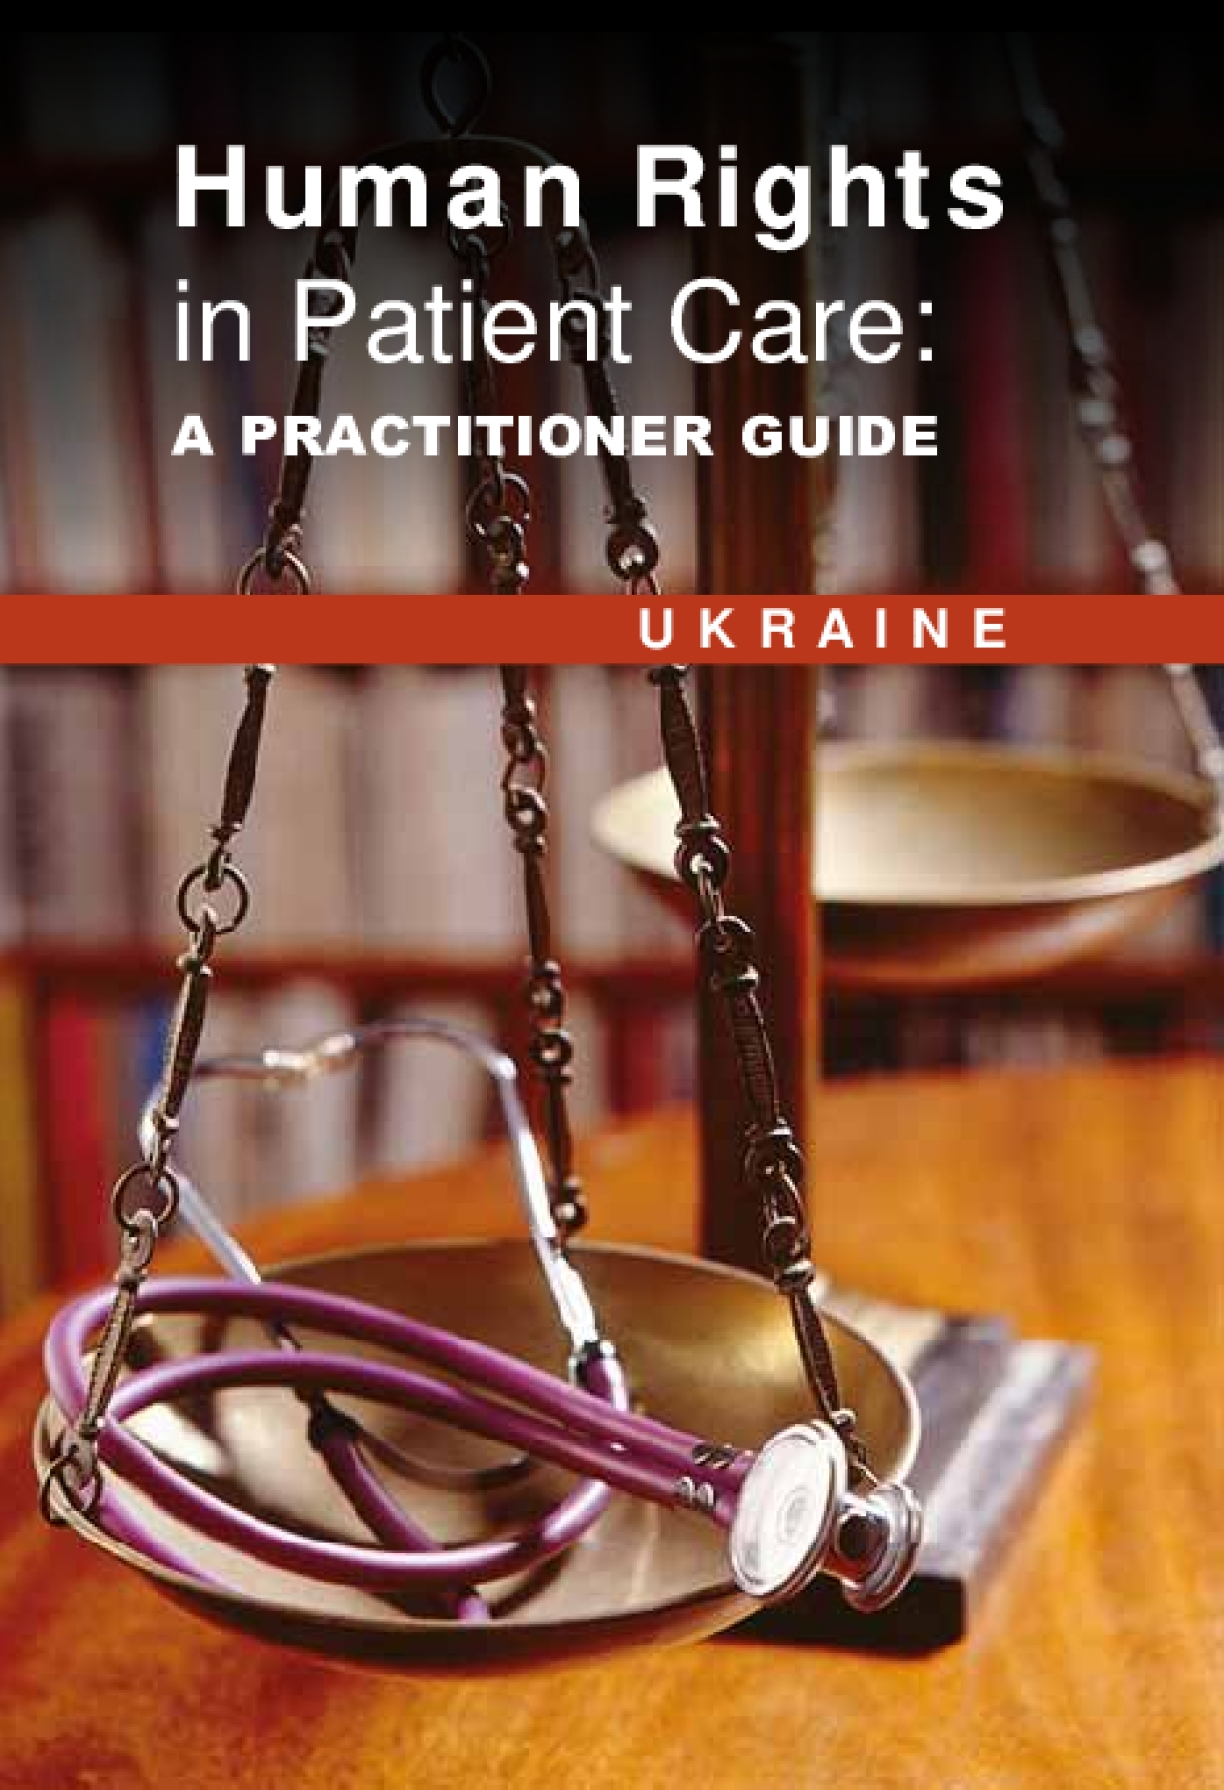 Human Rights in Patient Care: A Practitioner Guide - Ukraine